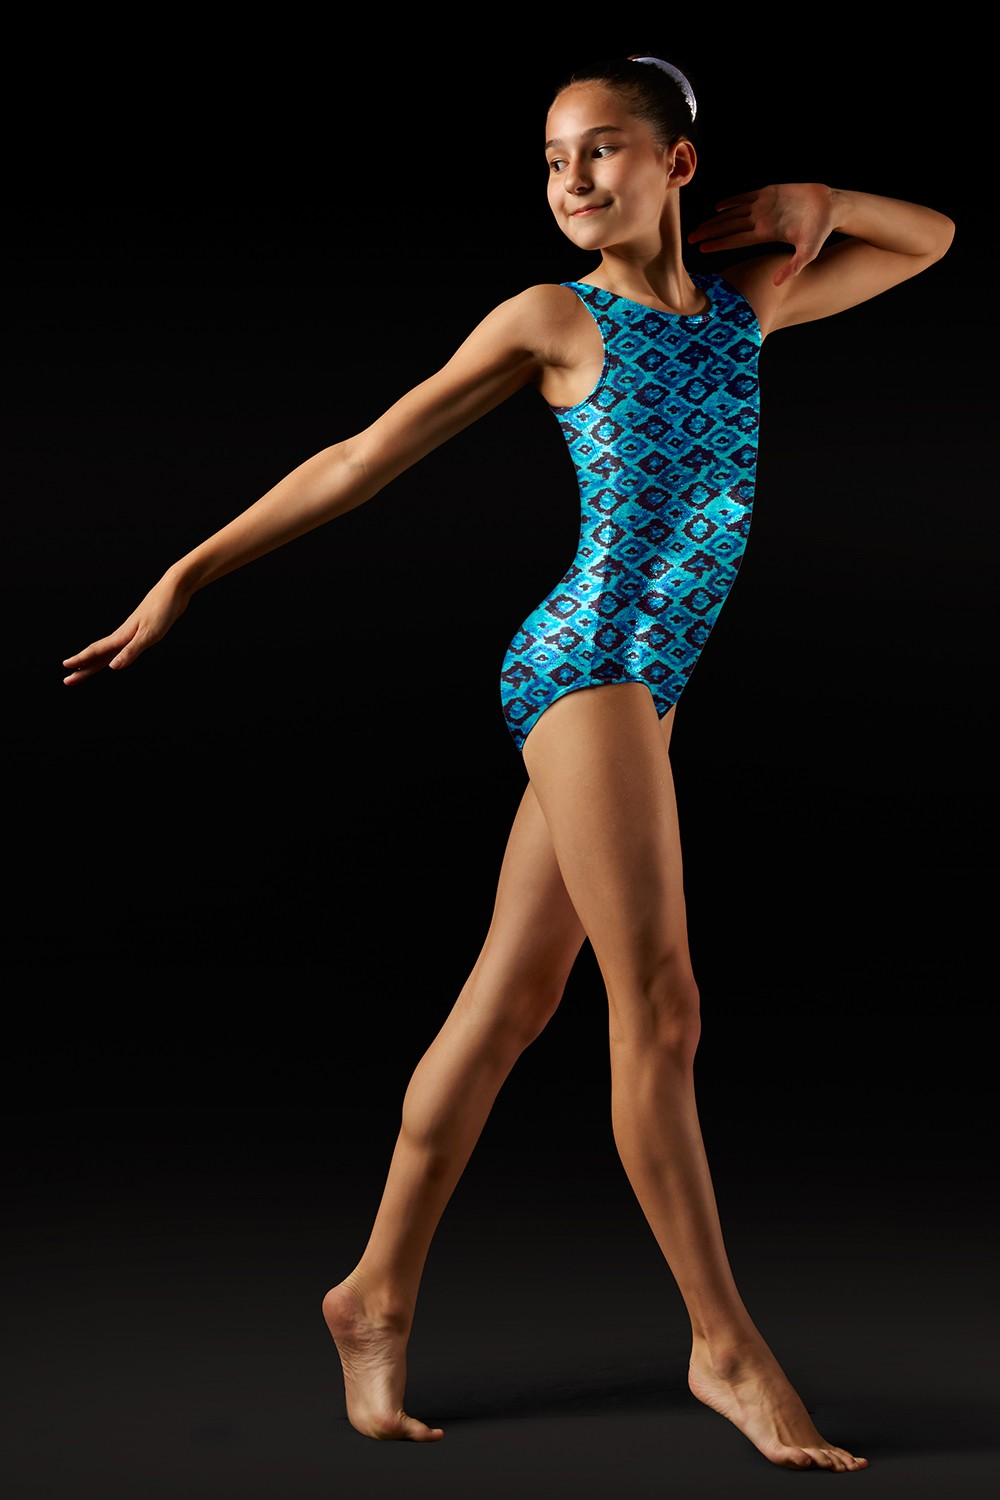 Aztec Tank Trikot Women's Gymnastics Leotards